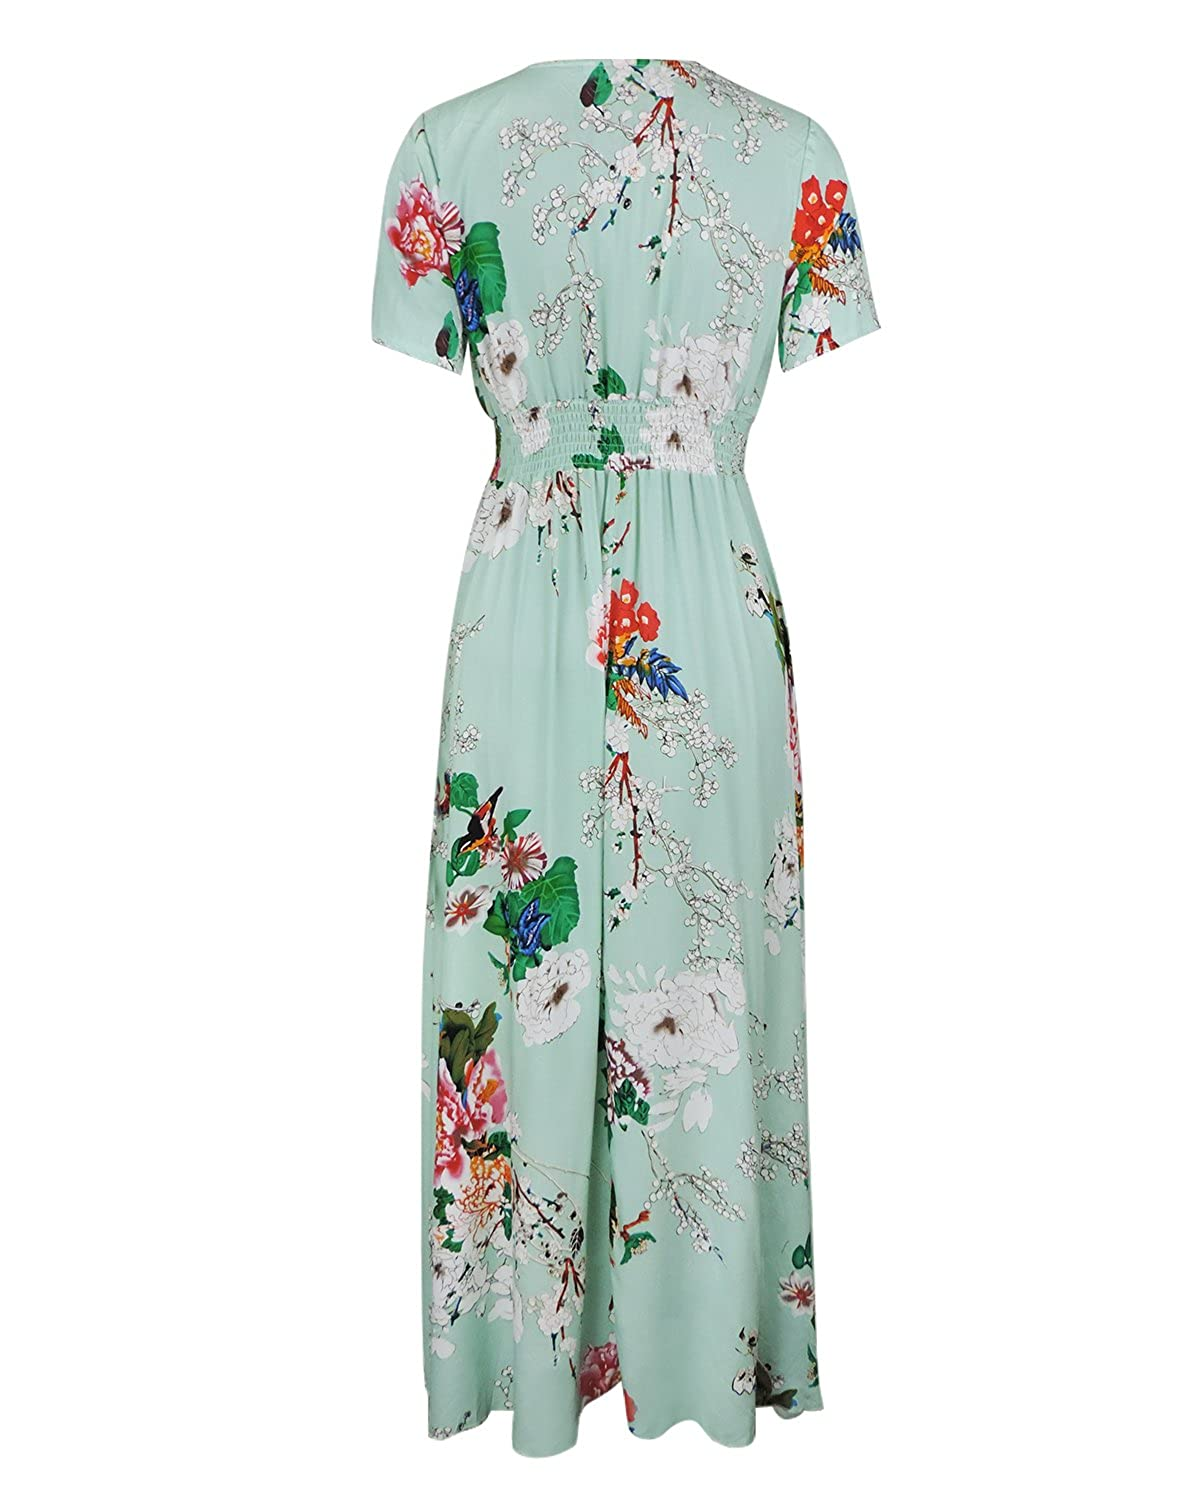 1ba623ef04 COMFORTABLE RAYON MATERIAL: Made of Rayon, the long bohemia maxi dress is  soft, breathable and skin-friendly.